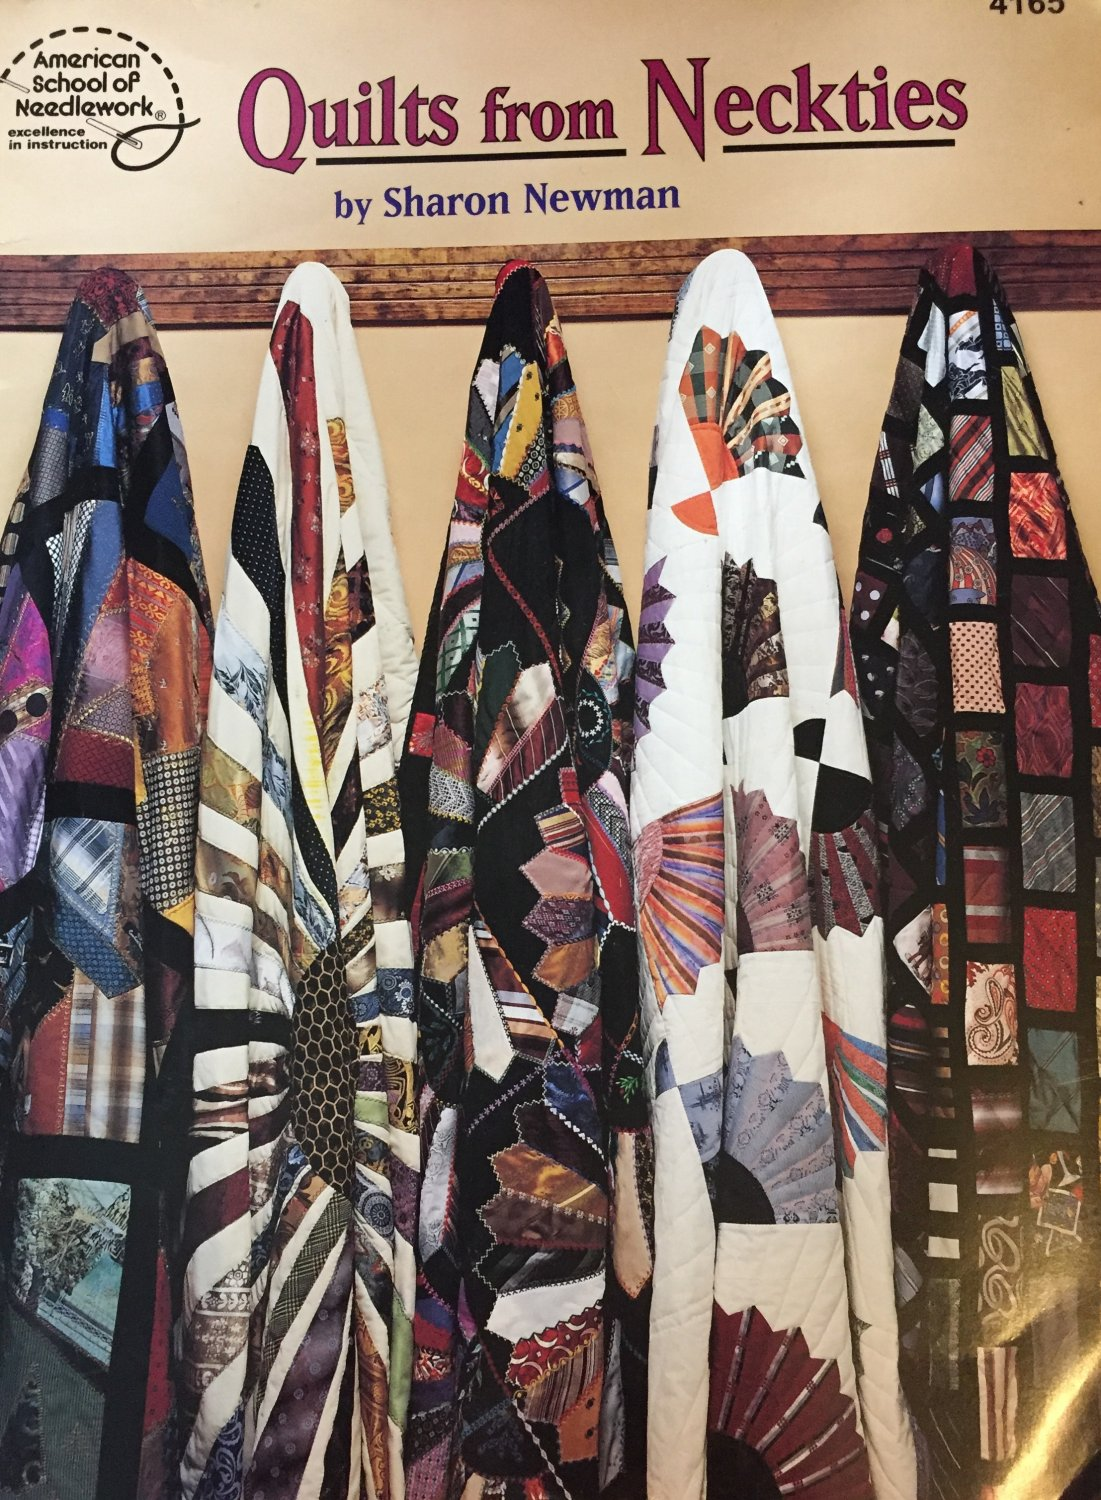 Quilts from Neckties by Sharon Newman. American School of Needlework Quilting Pattern Book 416